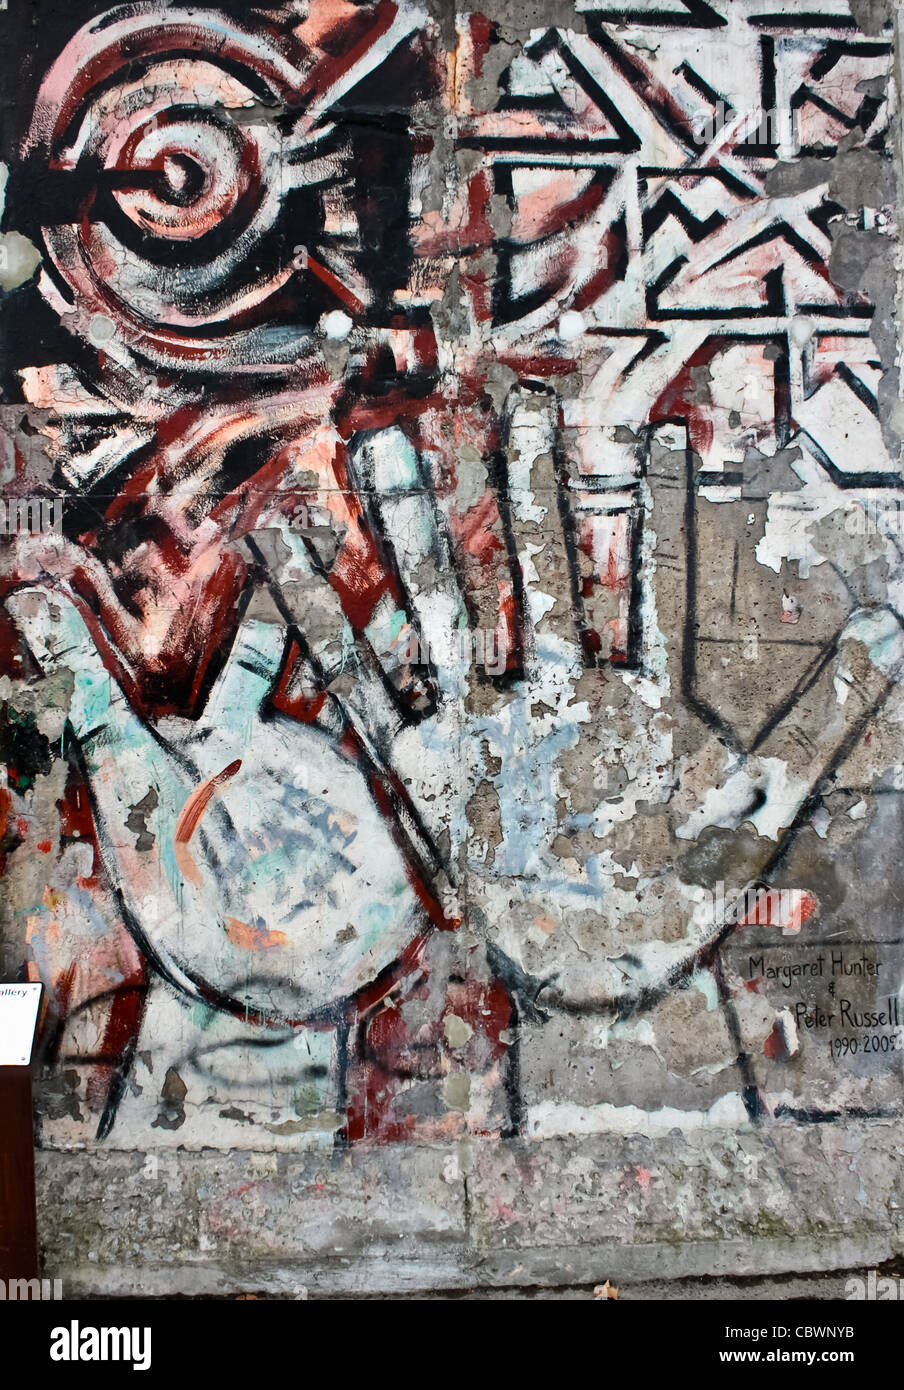 Graffiti on the East Side Gallery of the Berlin Wall representing hands - Stock Image